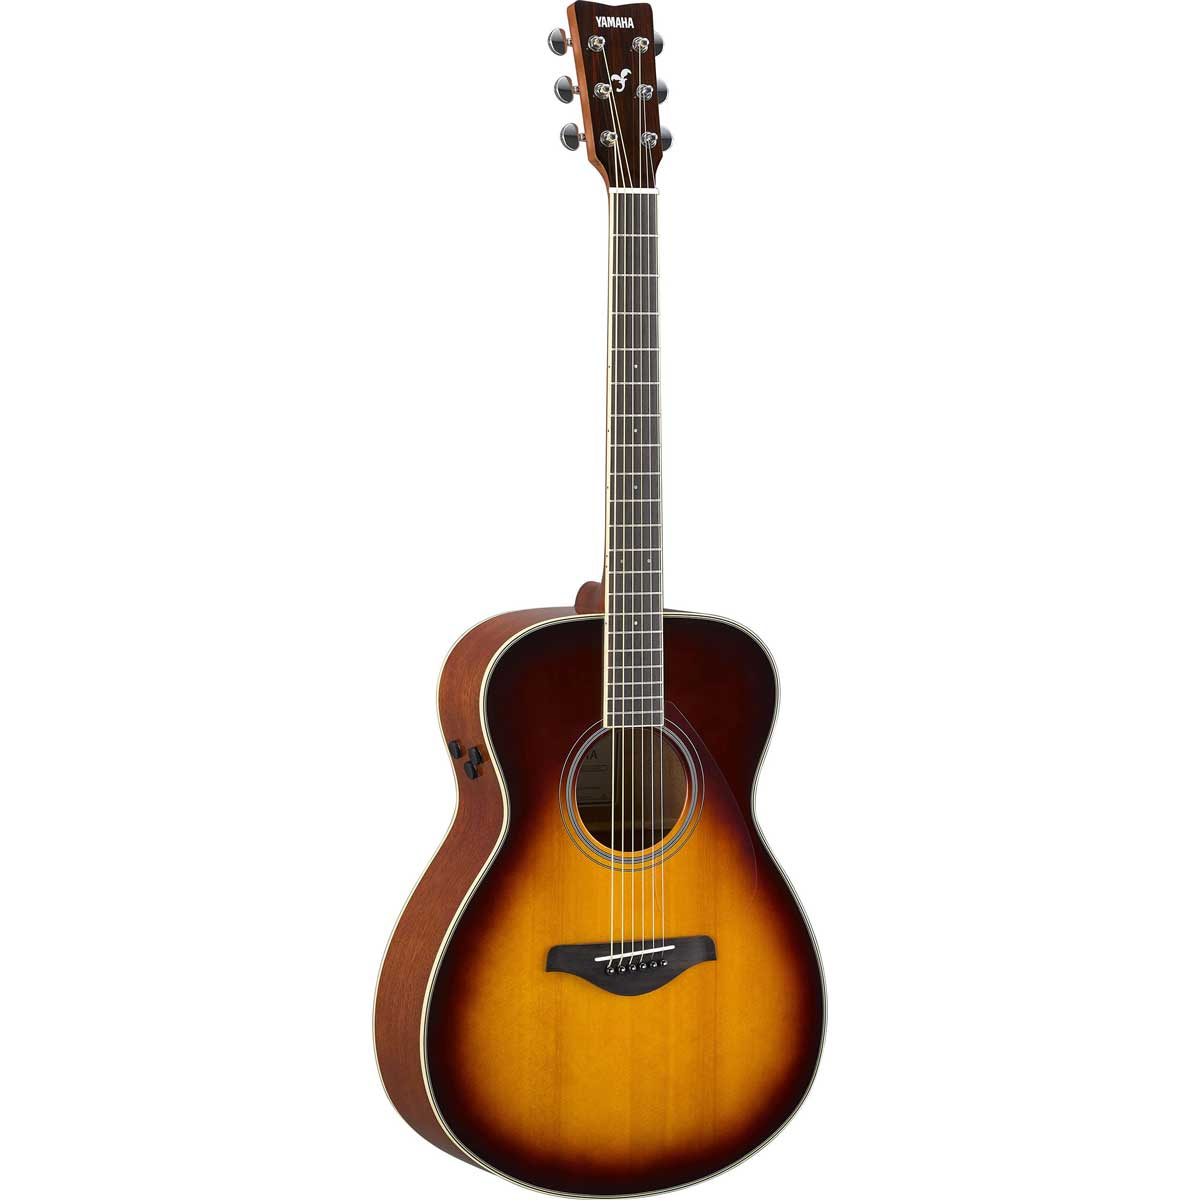 Yamaha FS-TA BS western-guitar brown sunburst